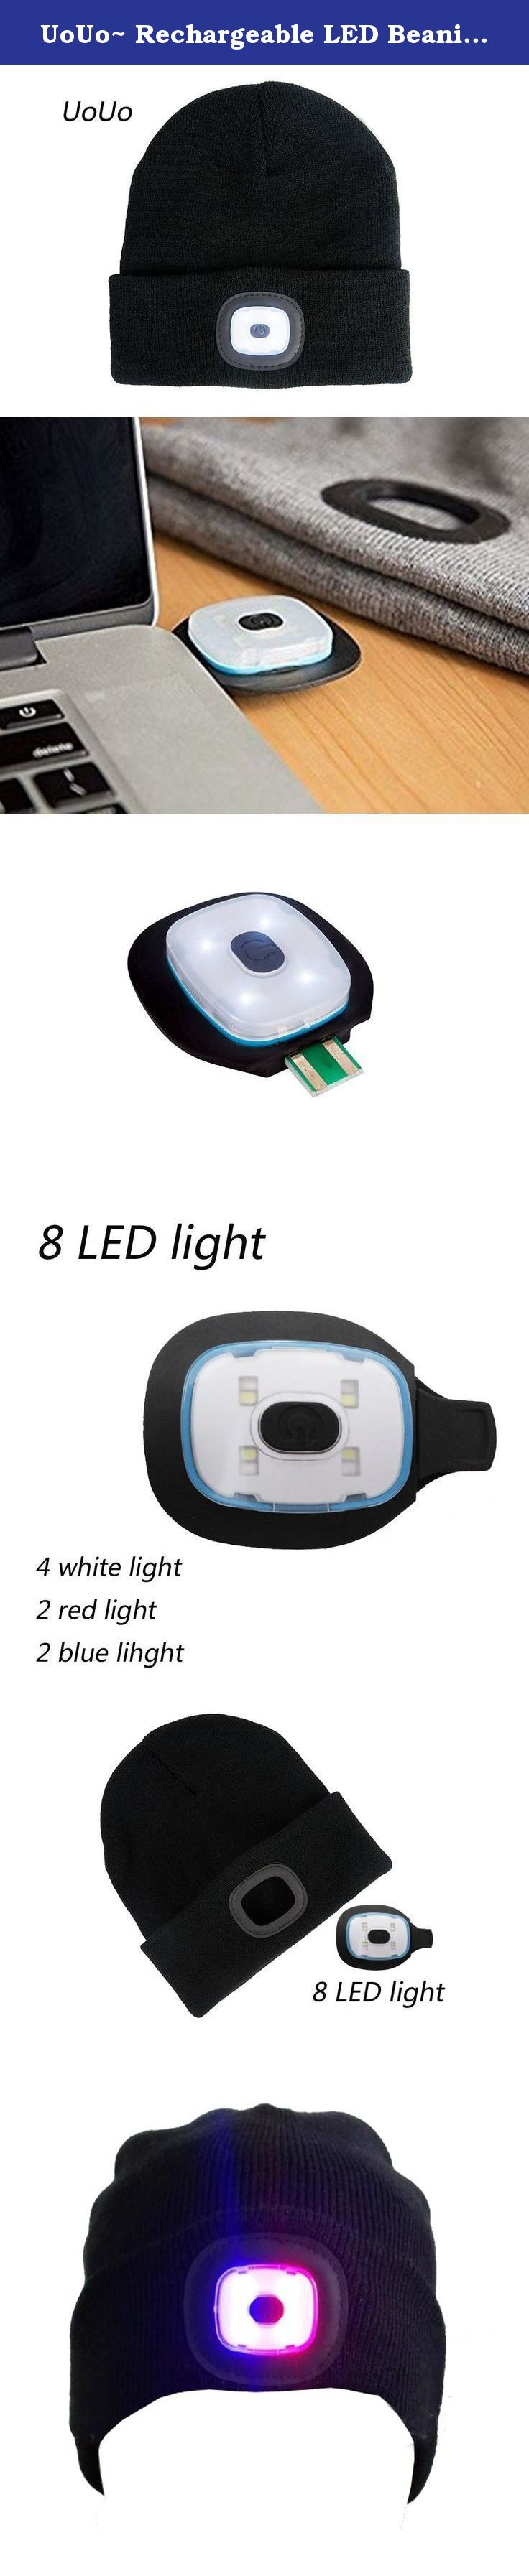 acfa3b193a2 UoUo~ Rechargeable LED Beanie